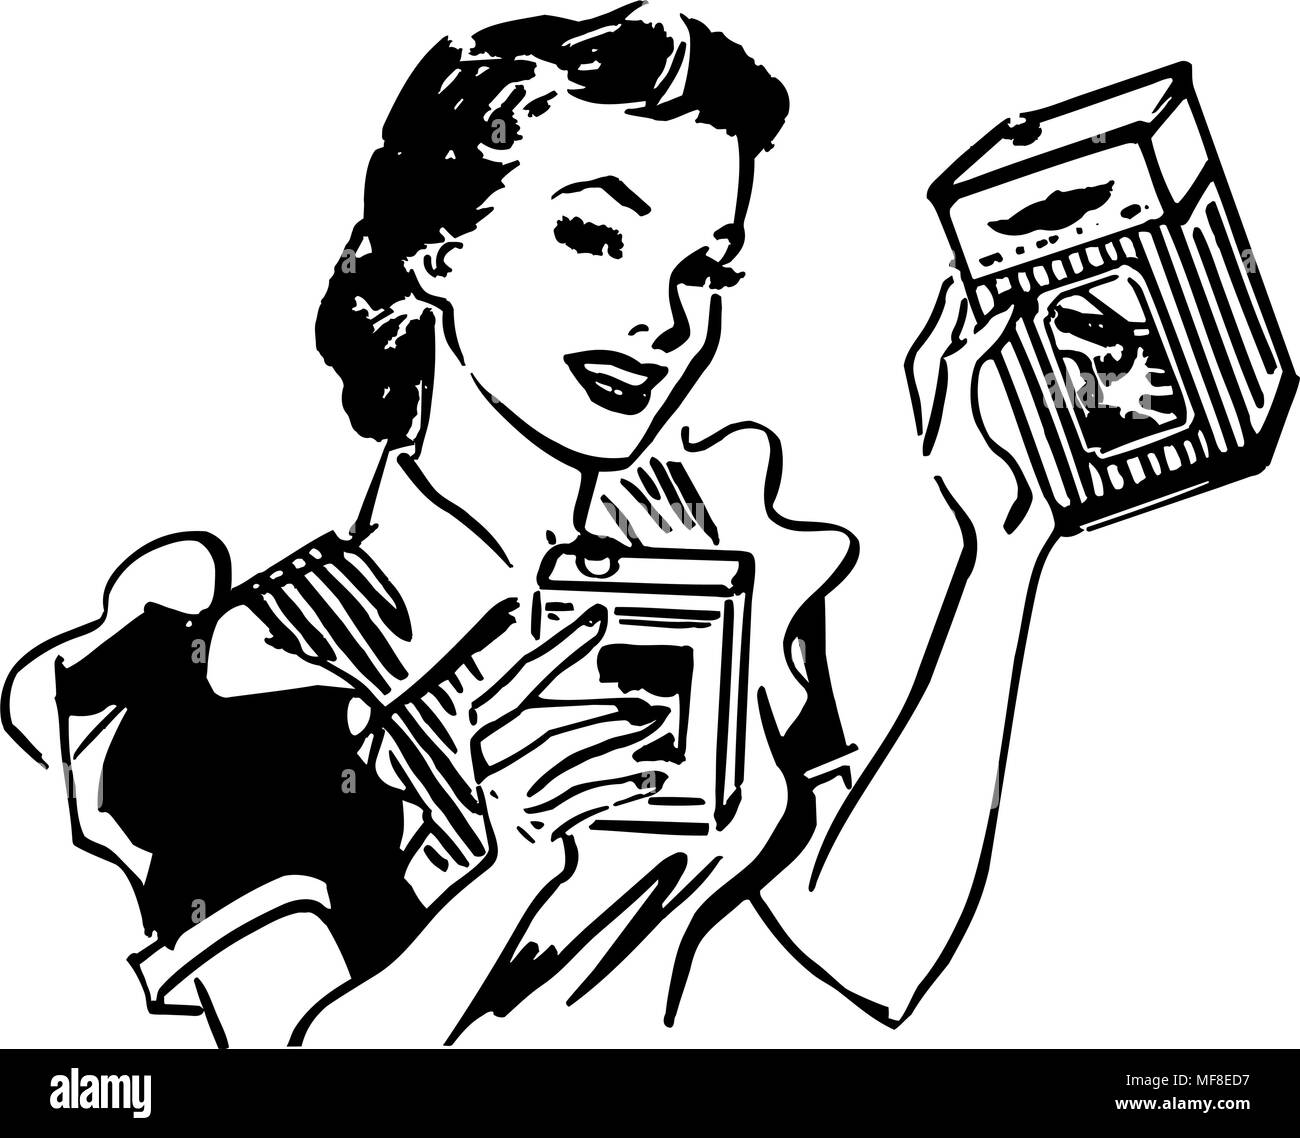 Housewife With Products - Retro Clipart Illustration Stock ...